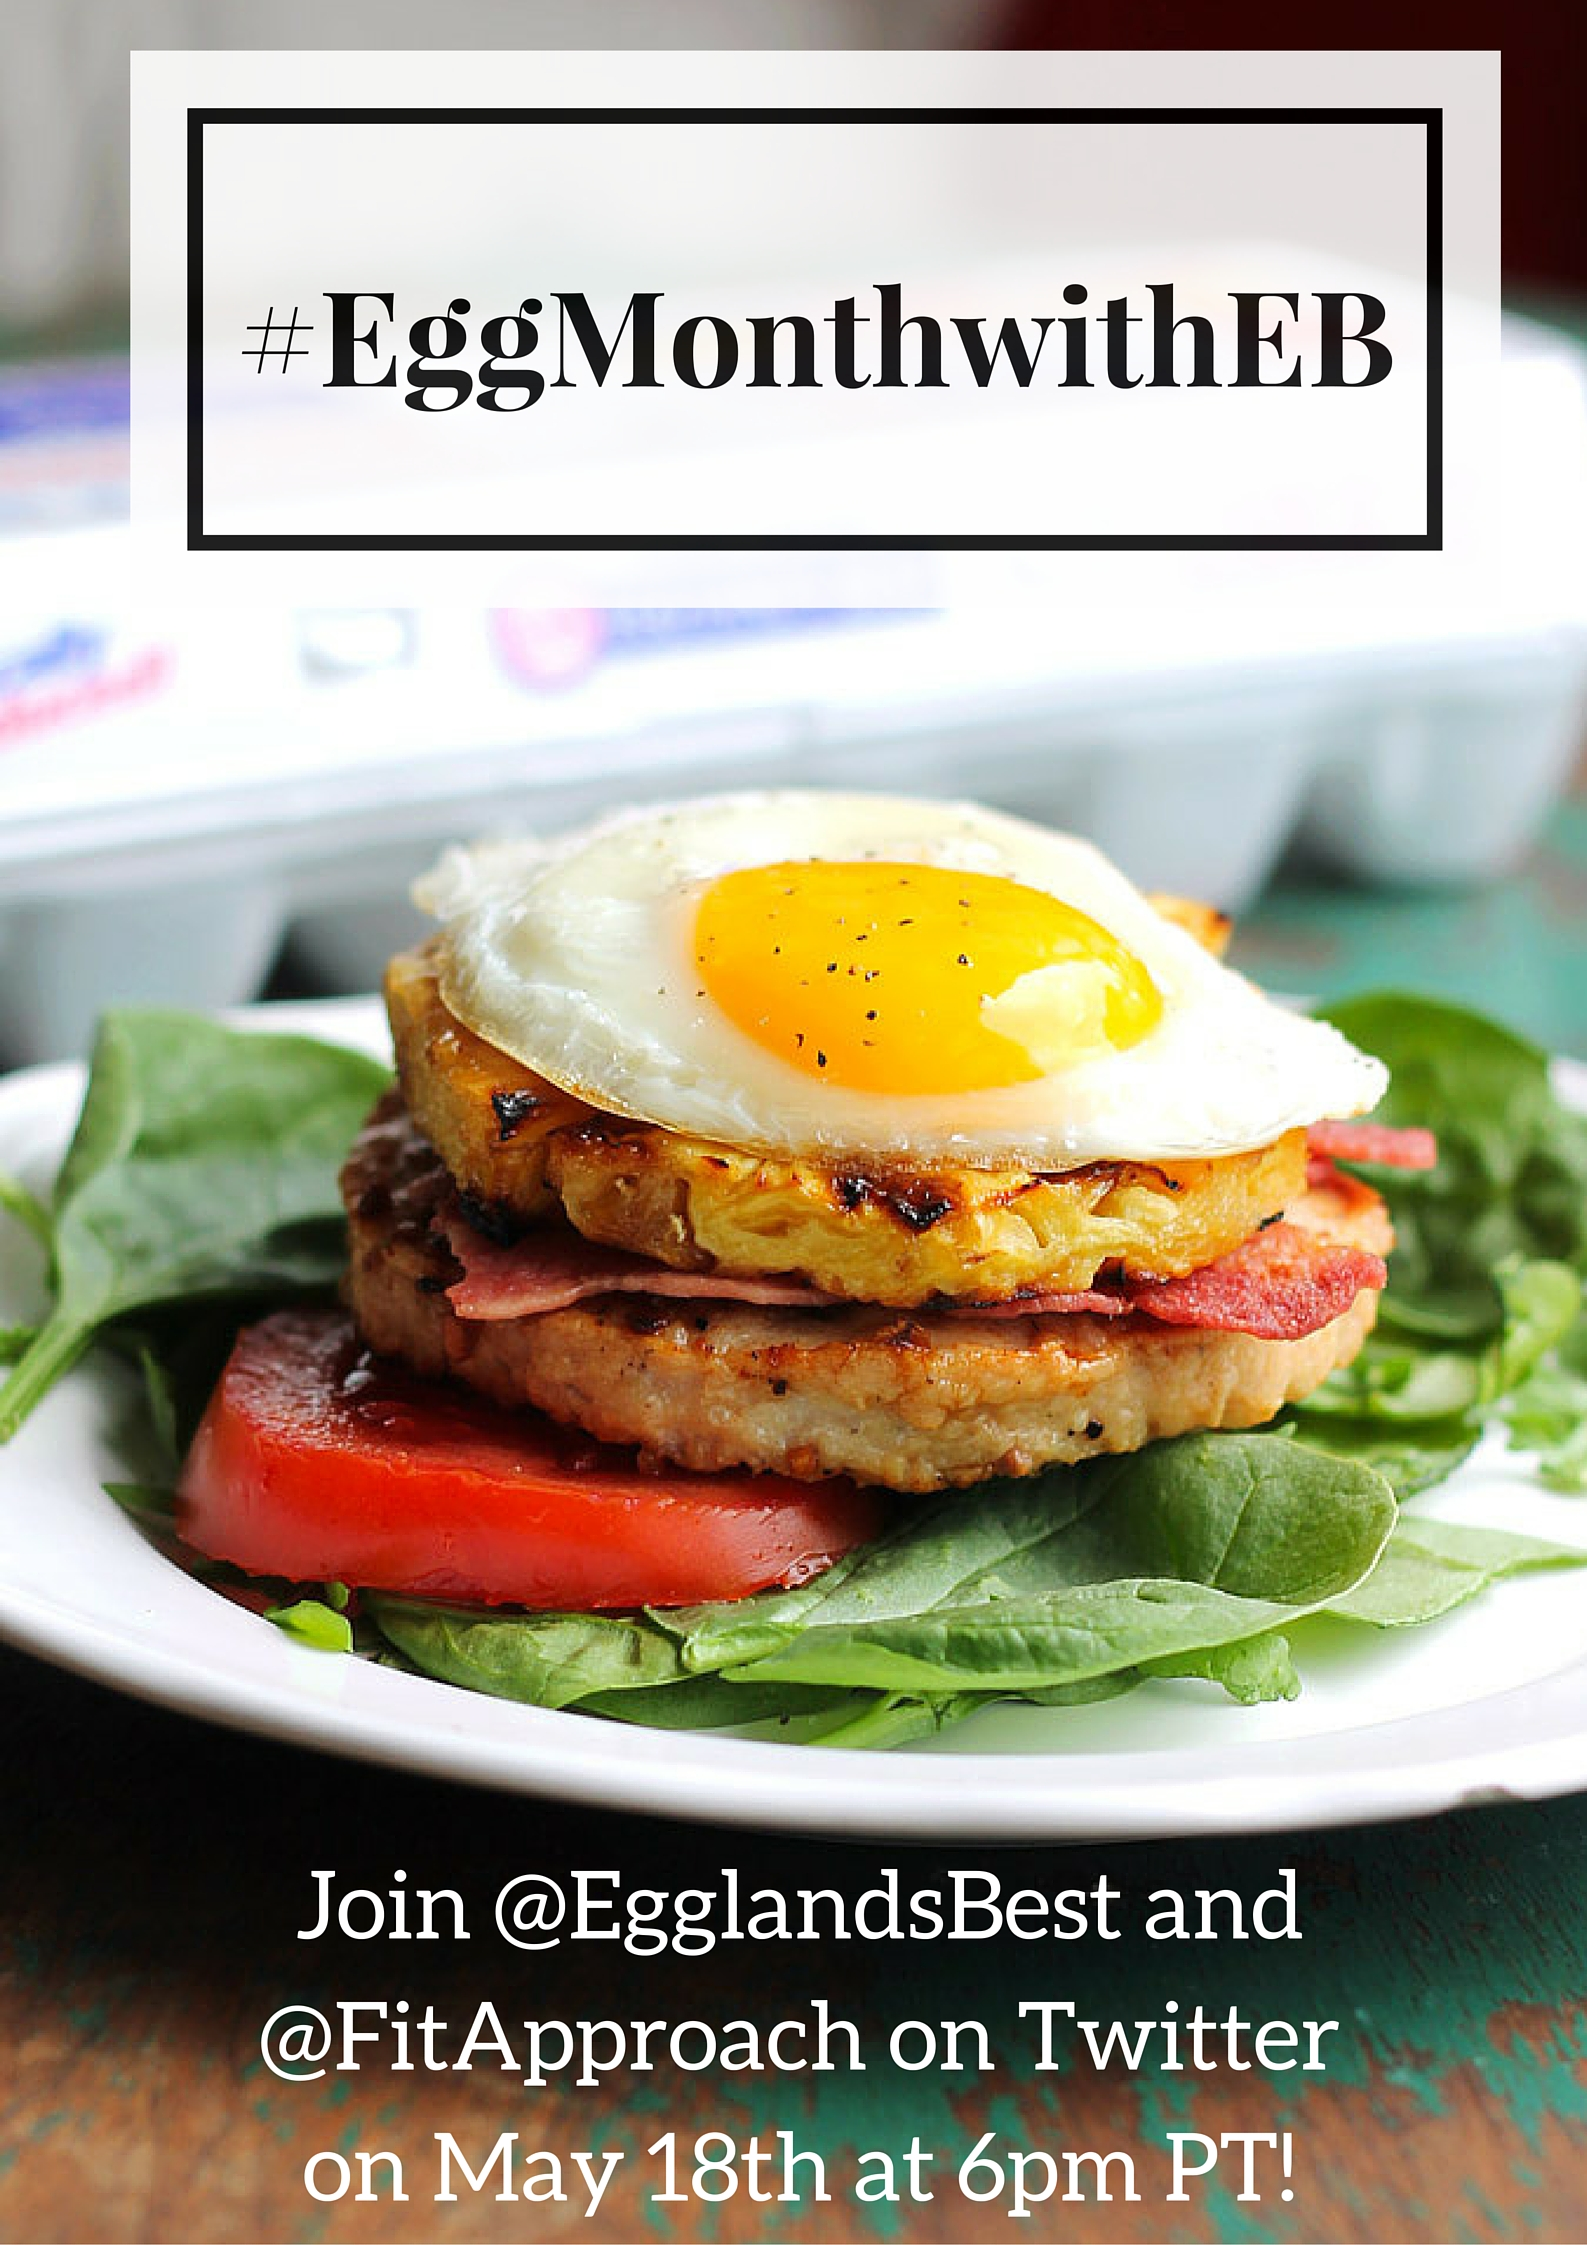 @EgglandsBest @FitApproach Twitter Party on May 18th!